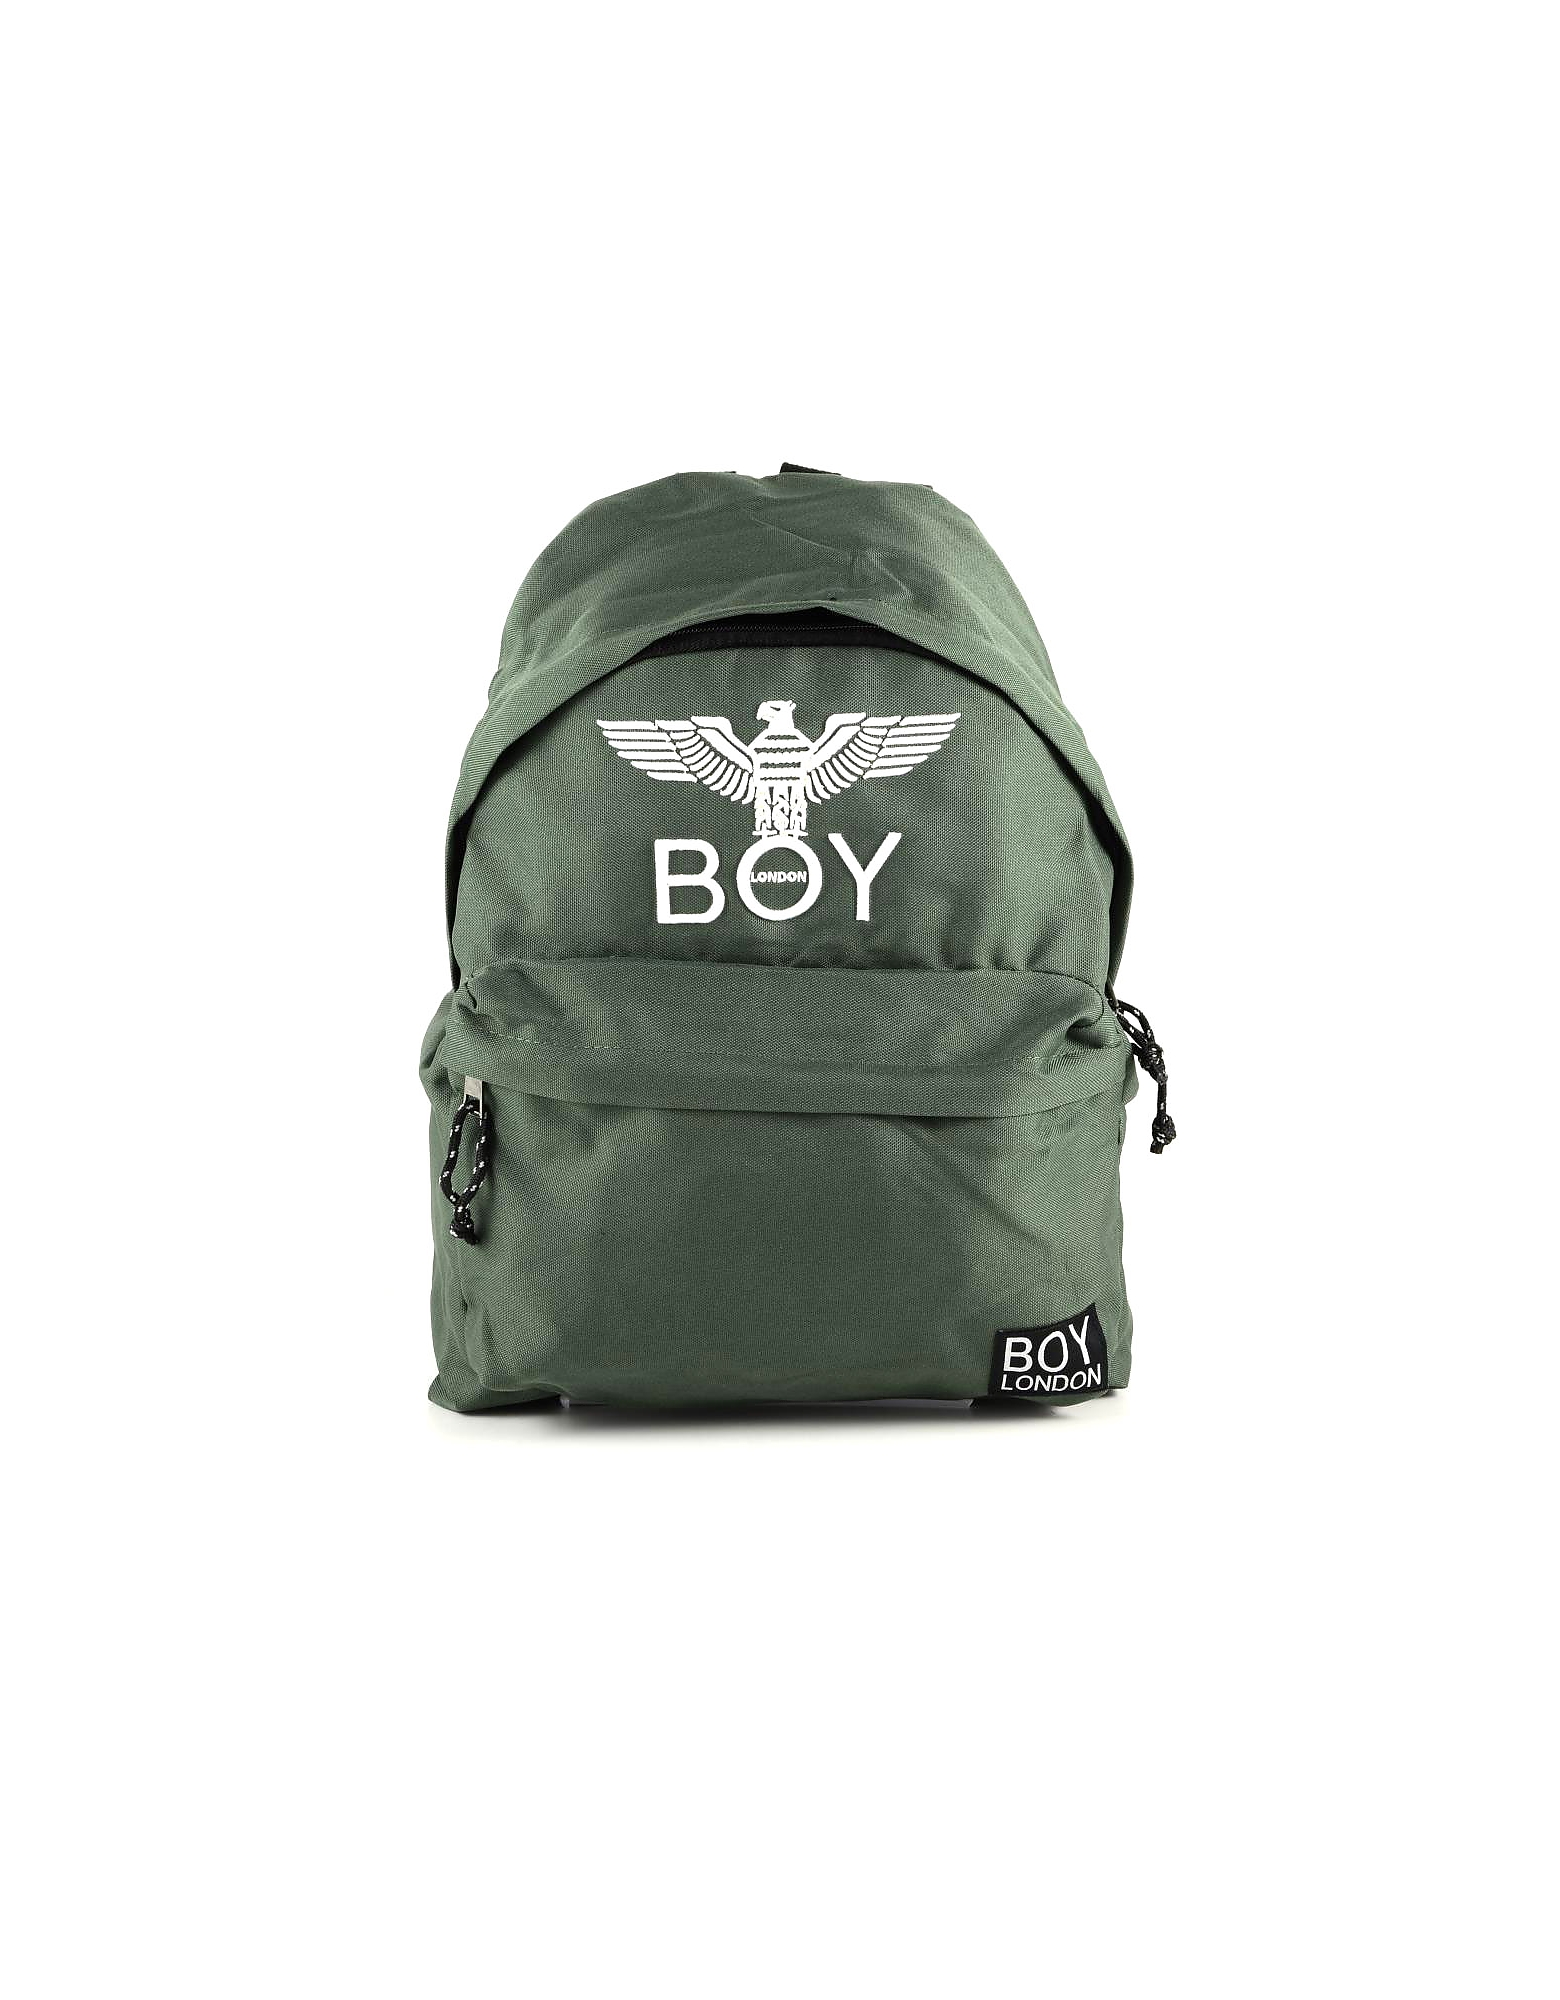 BOY London Designer Men's Bags, Olive Green Boy Eagle Backpack